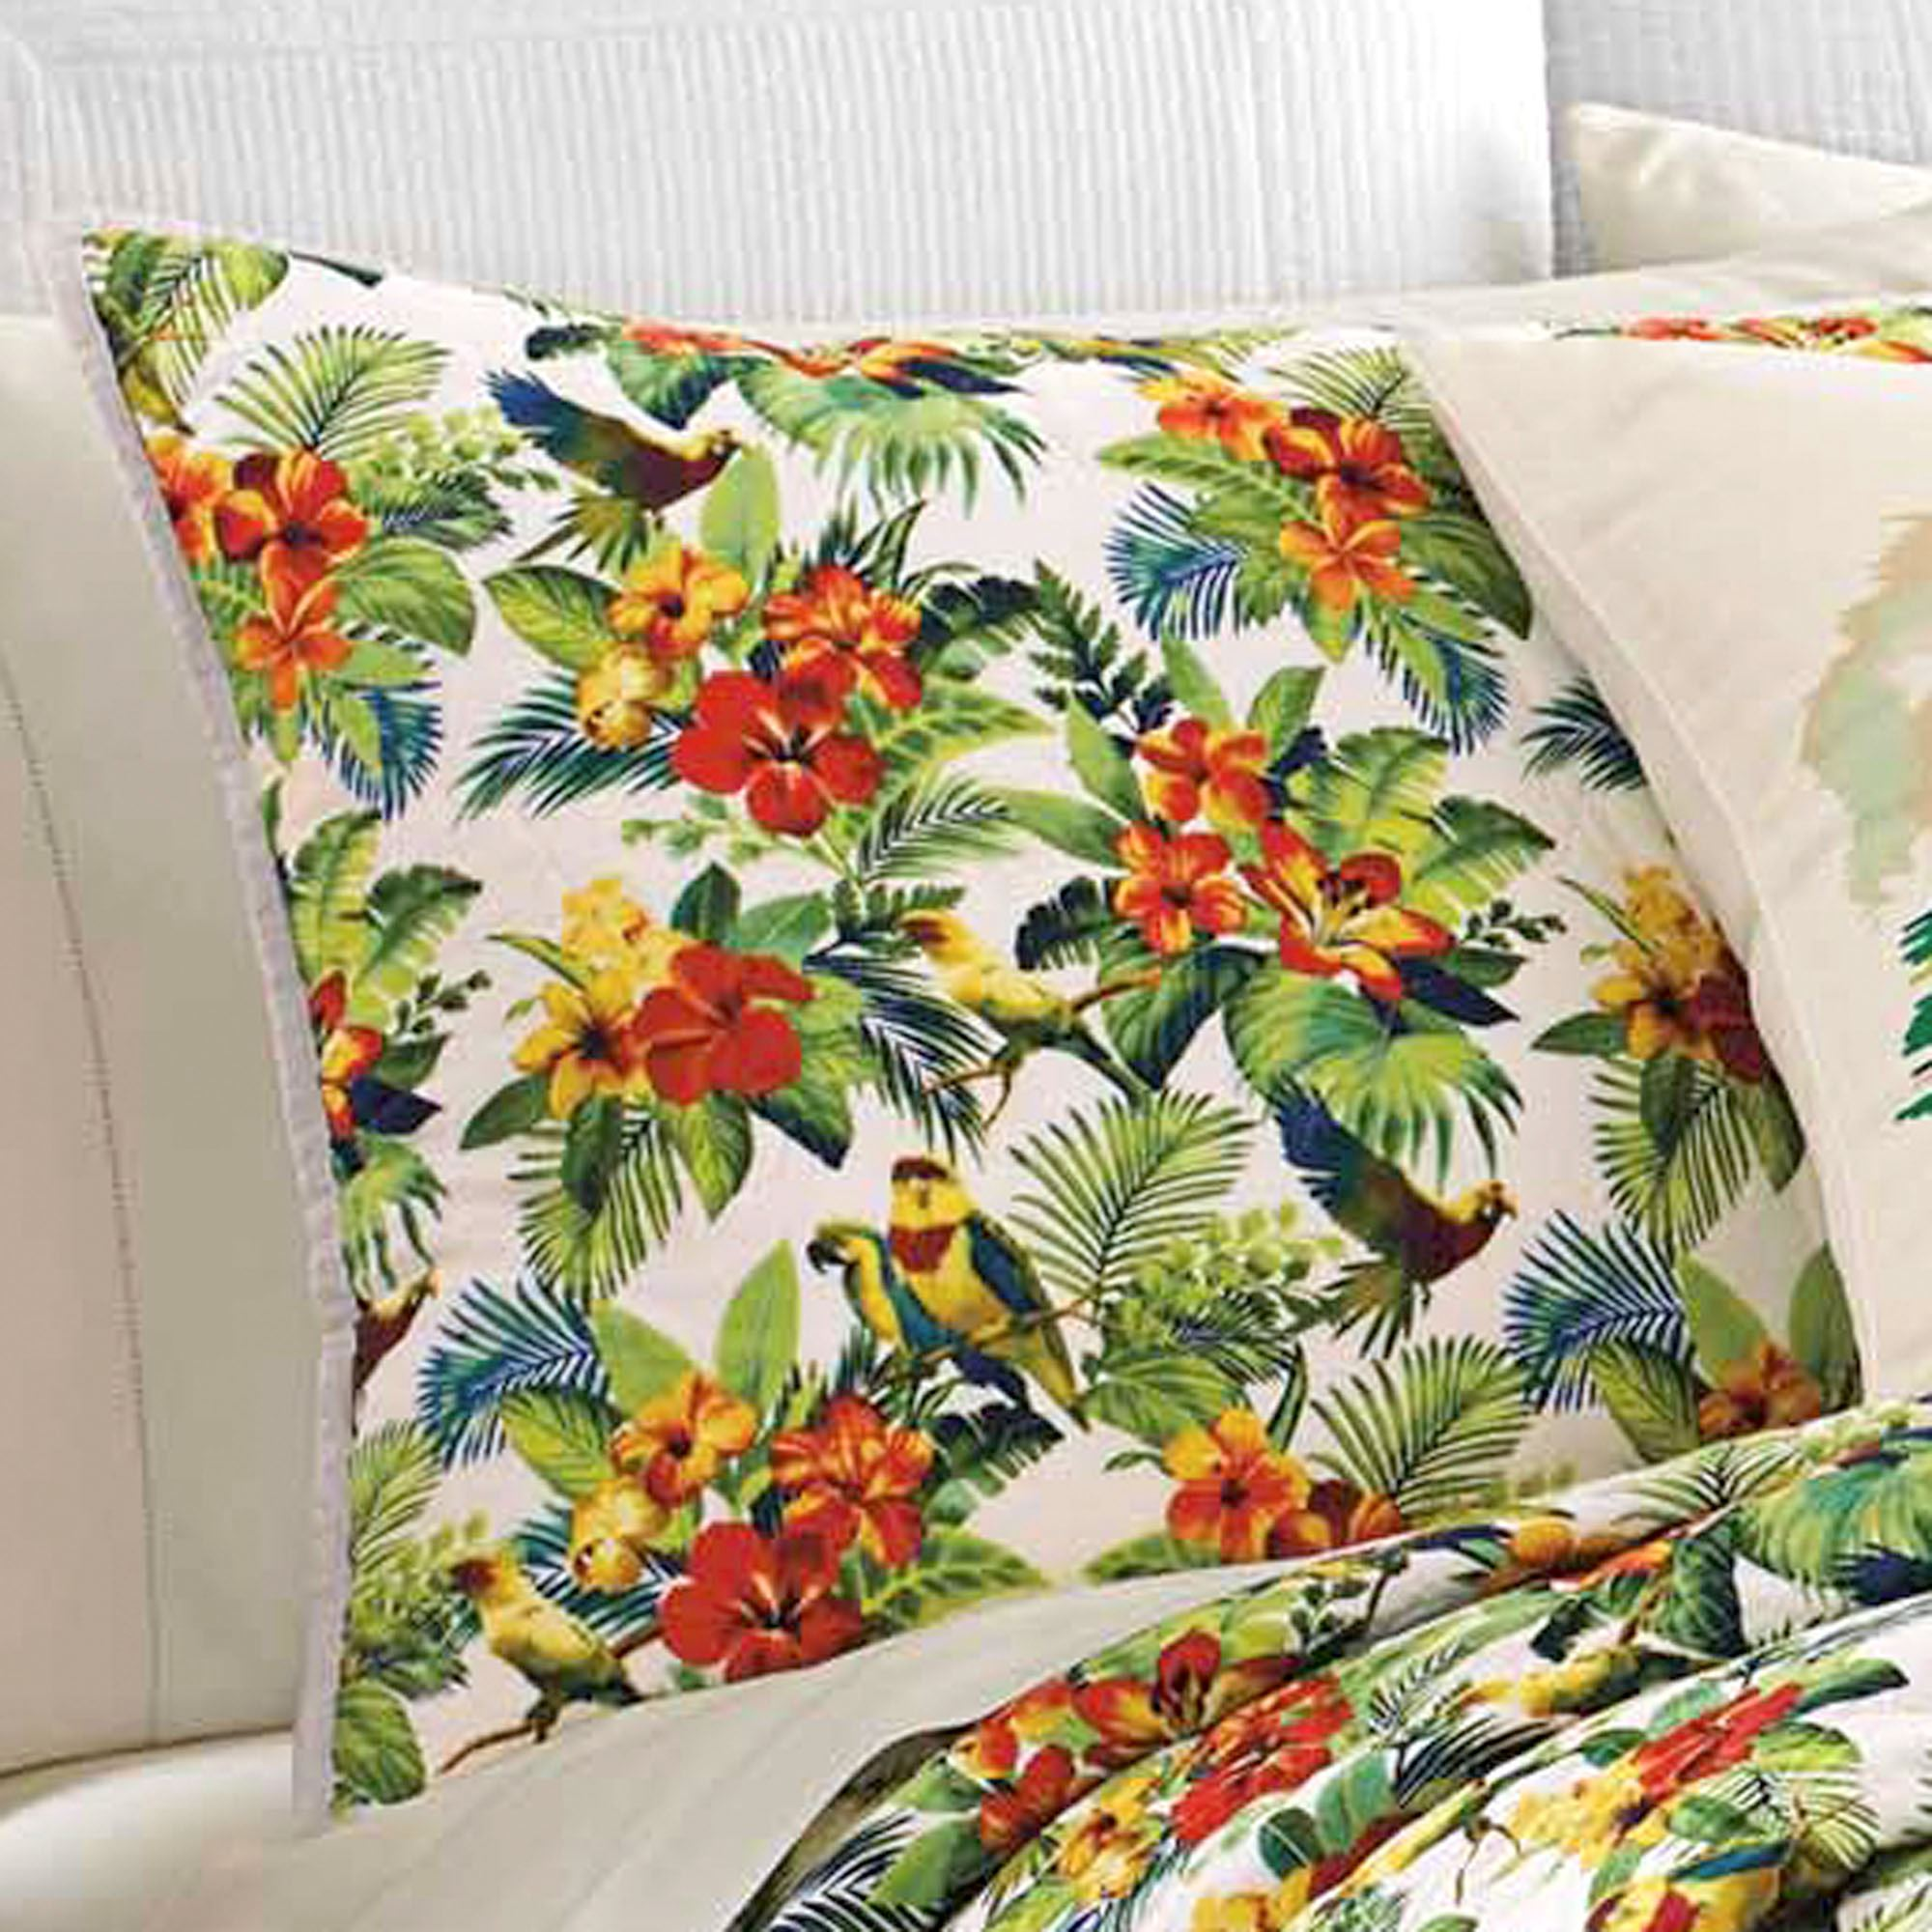 Parrot Cove Quilted Sham Multi Bright